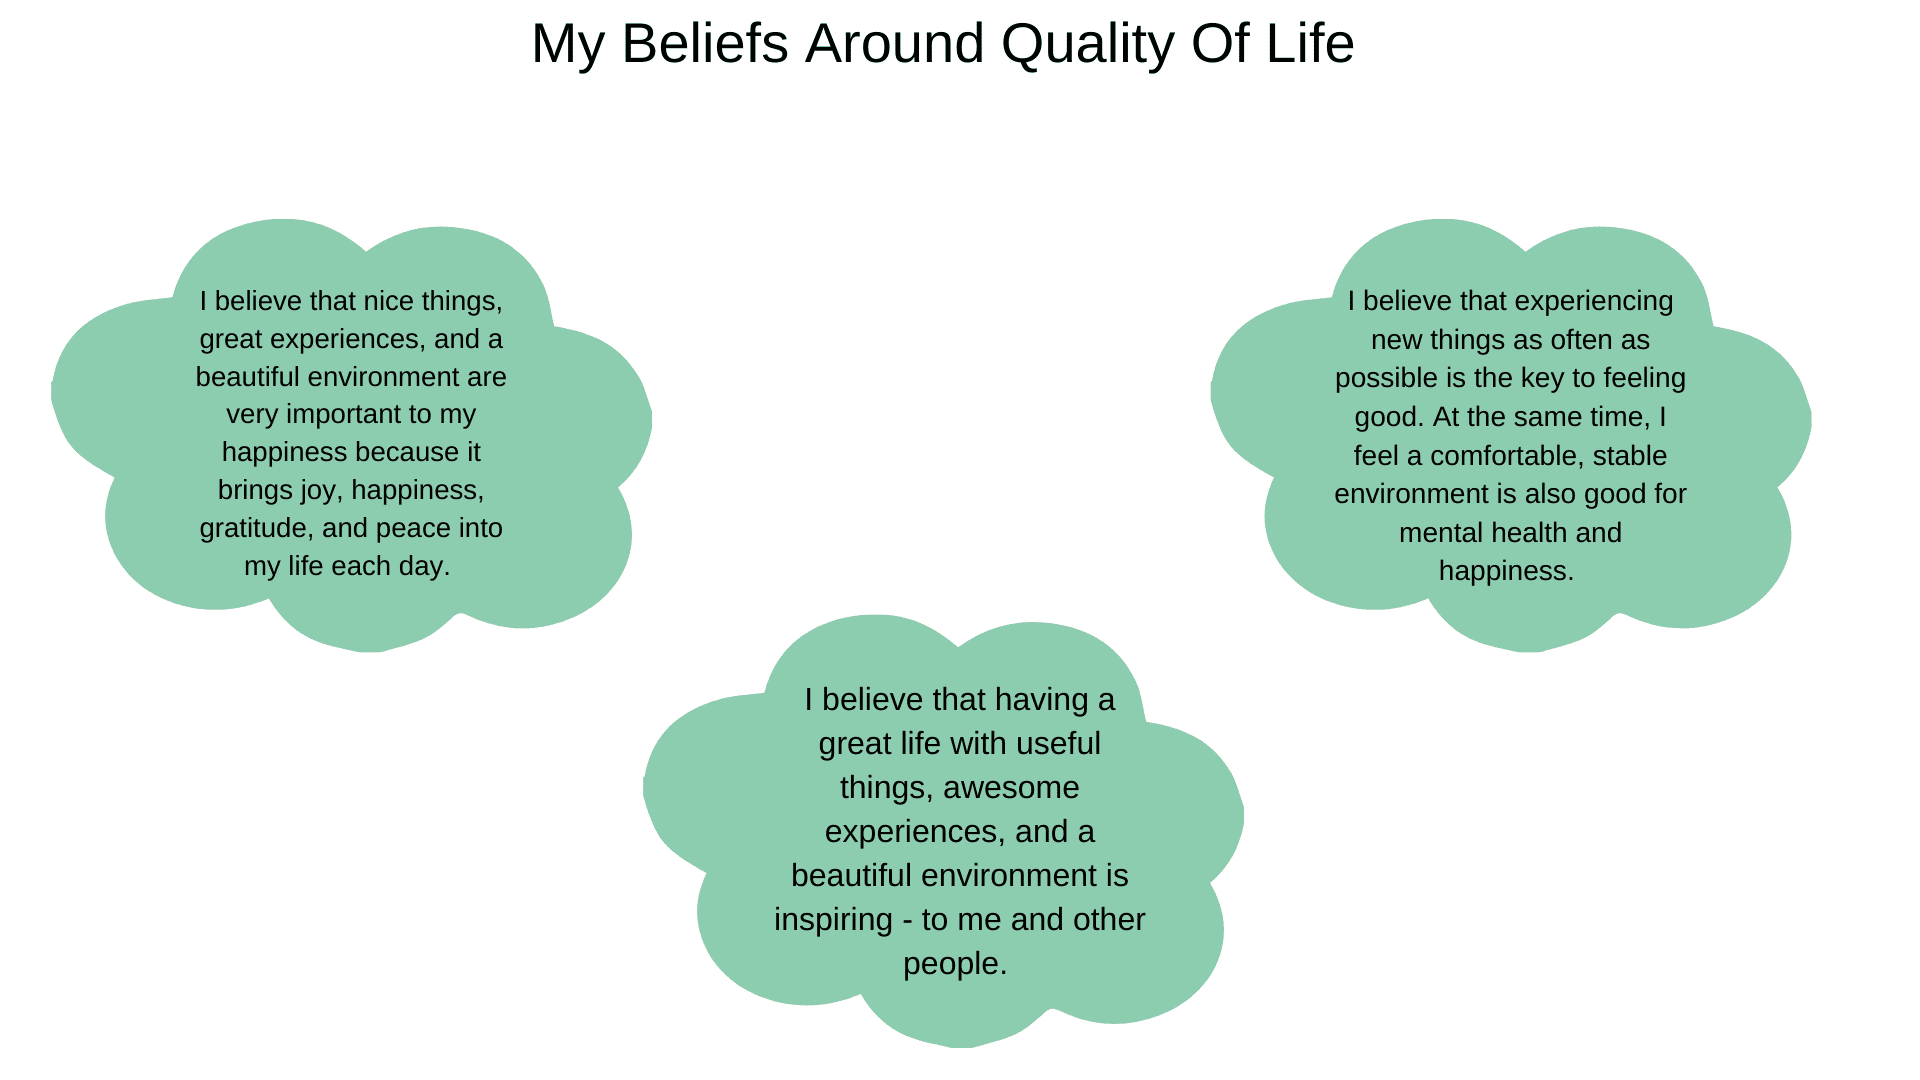 quality of life beliefs